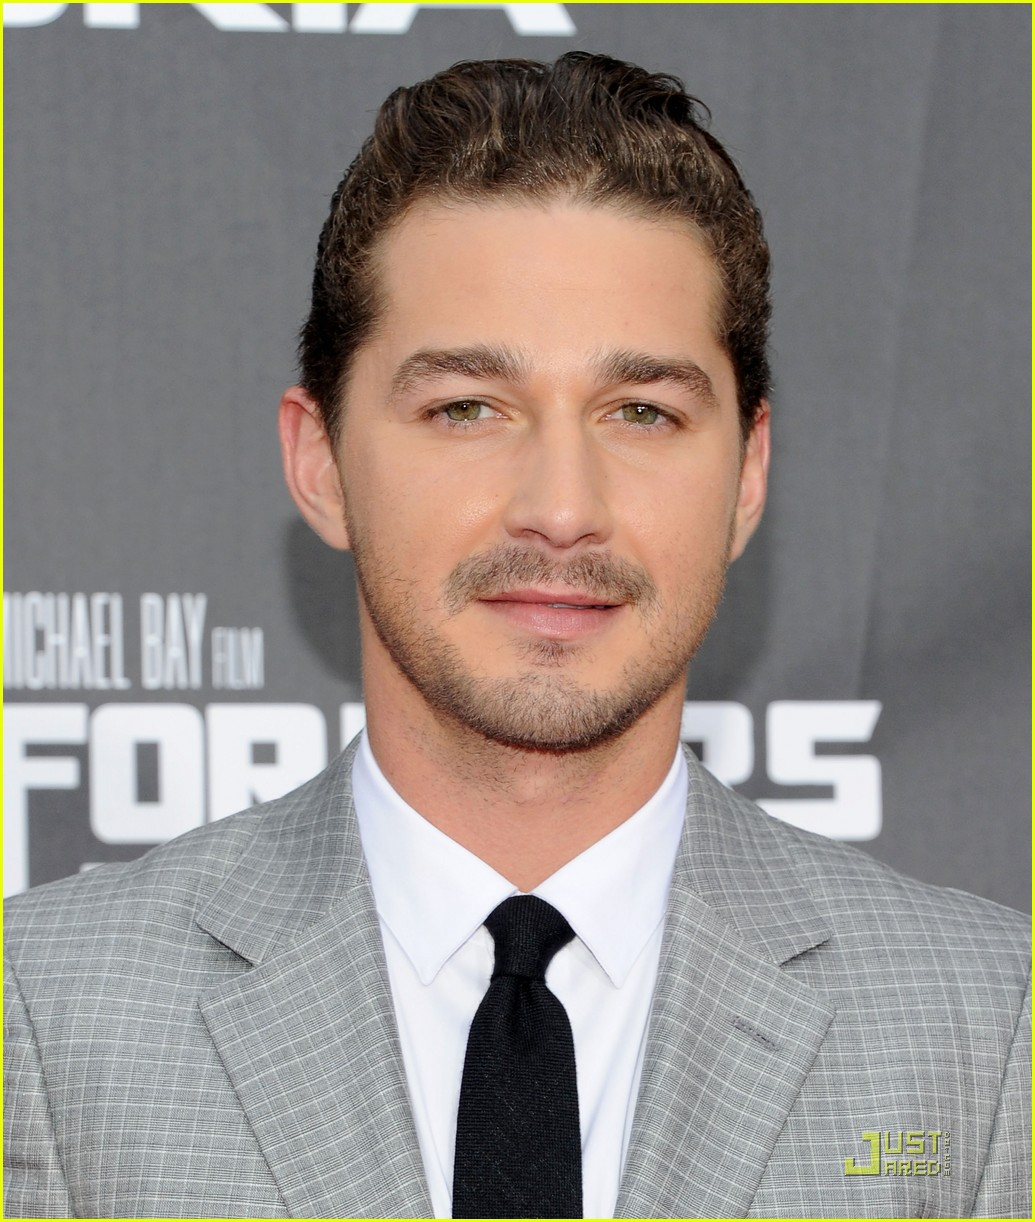 Shia LaBeouf Premieres 'Transformers' in NYC Shia Labeouf